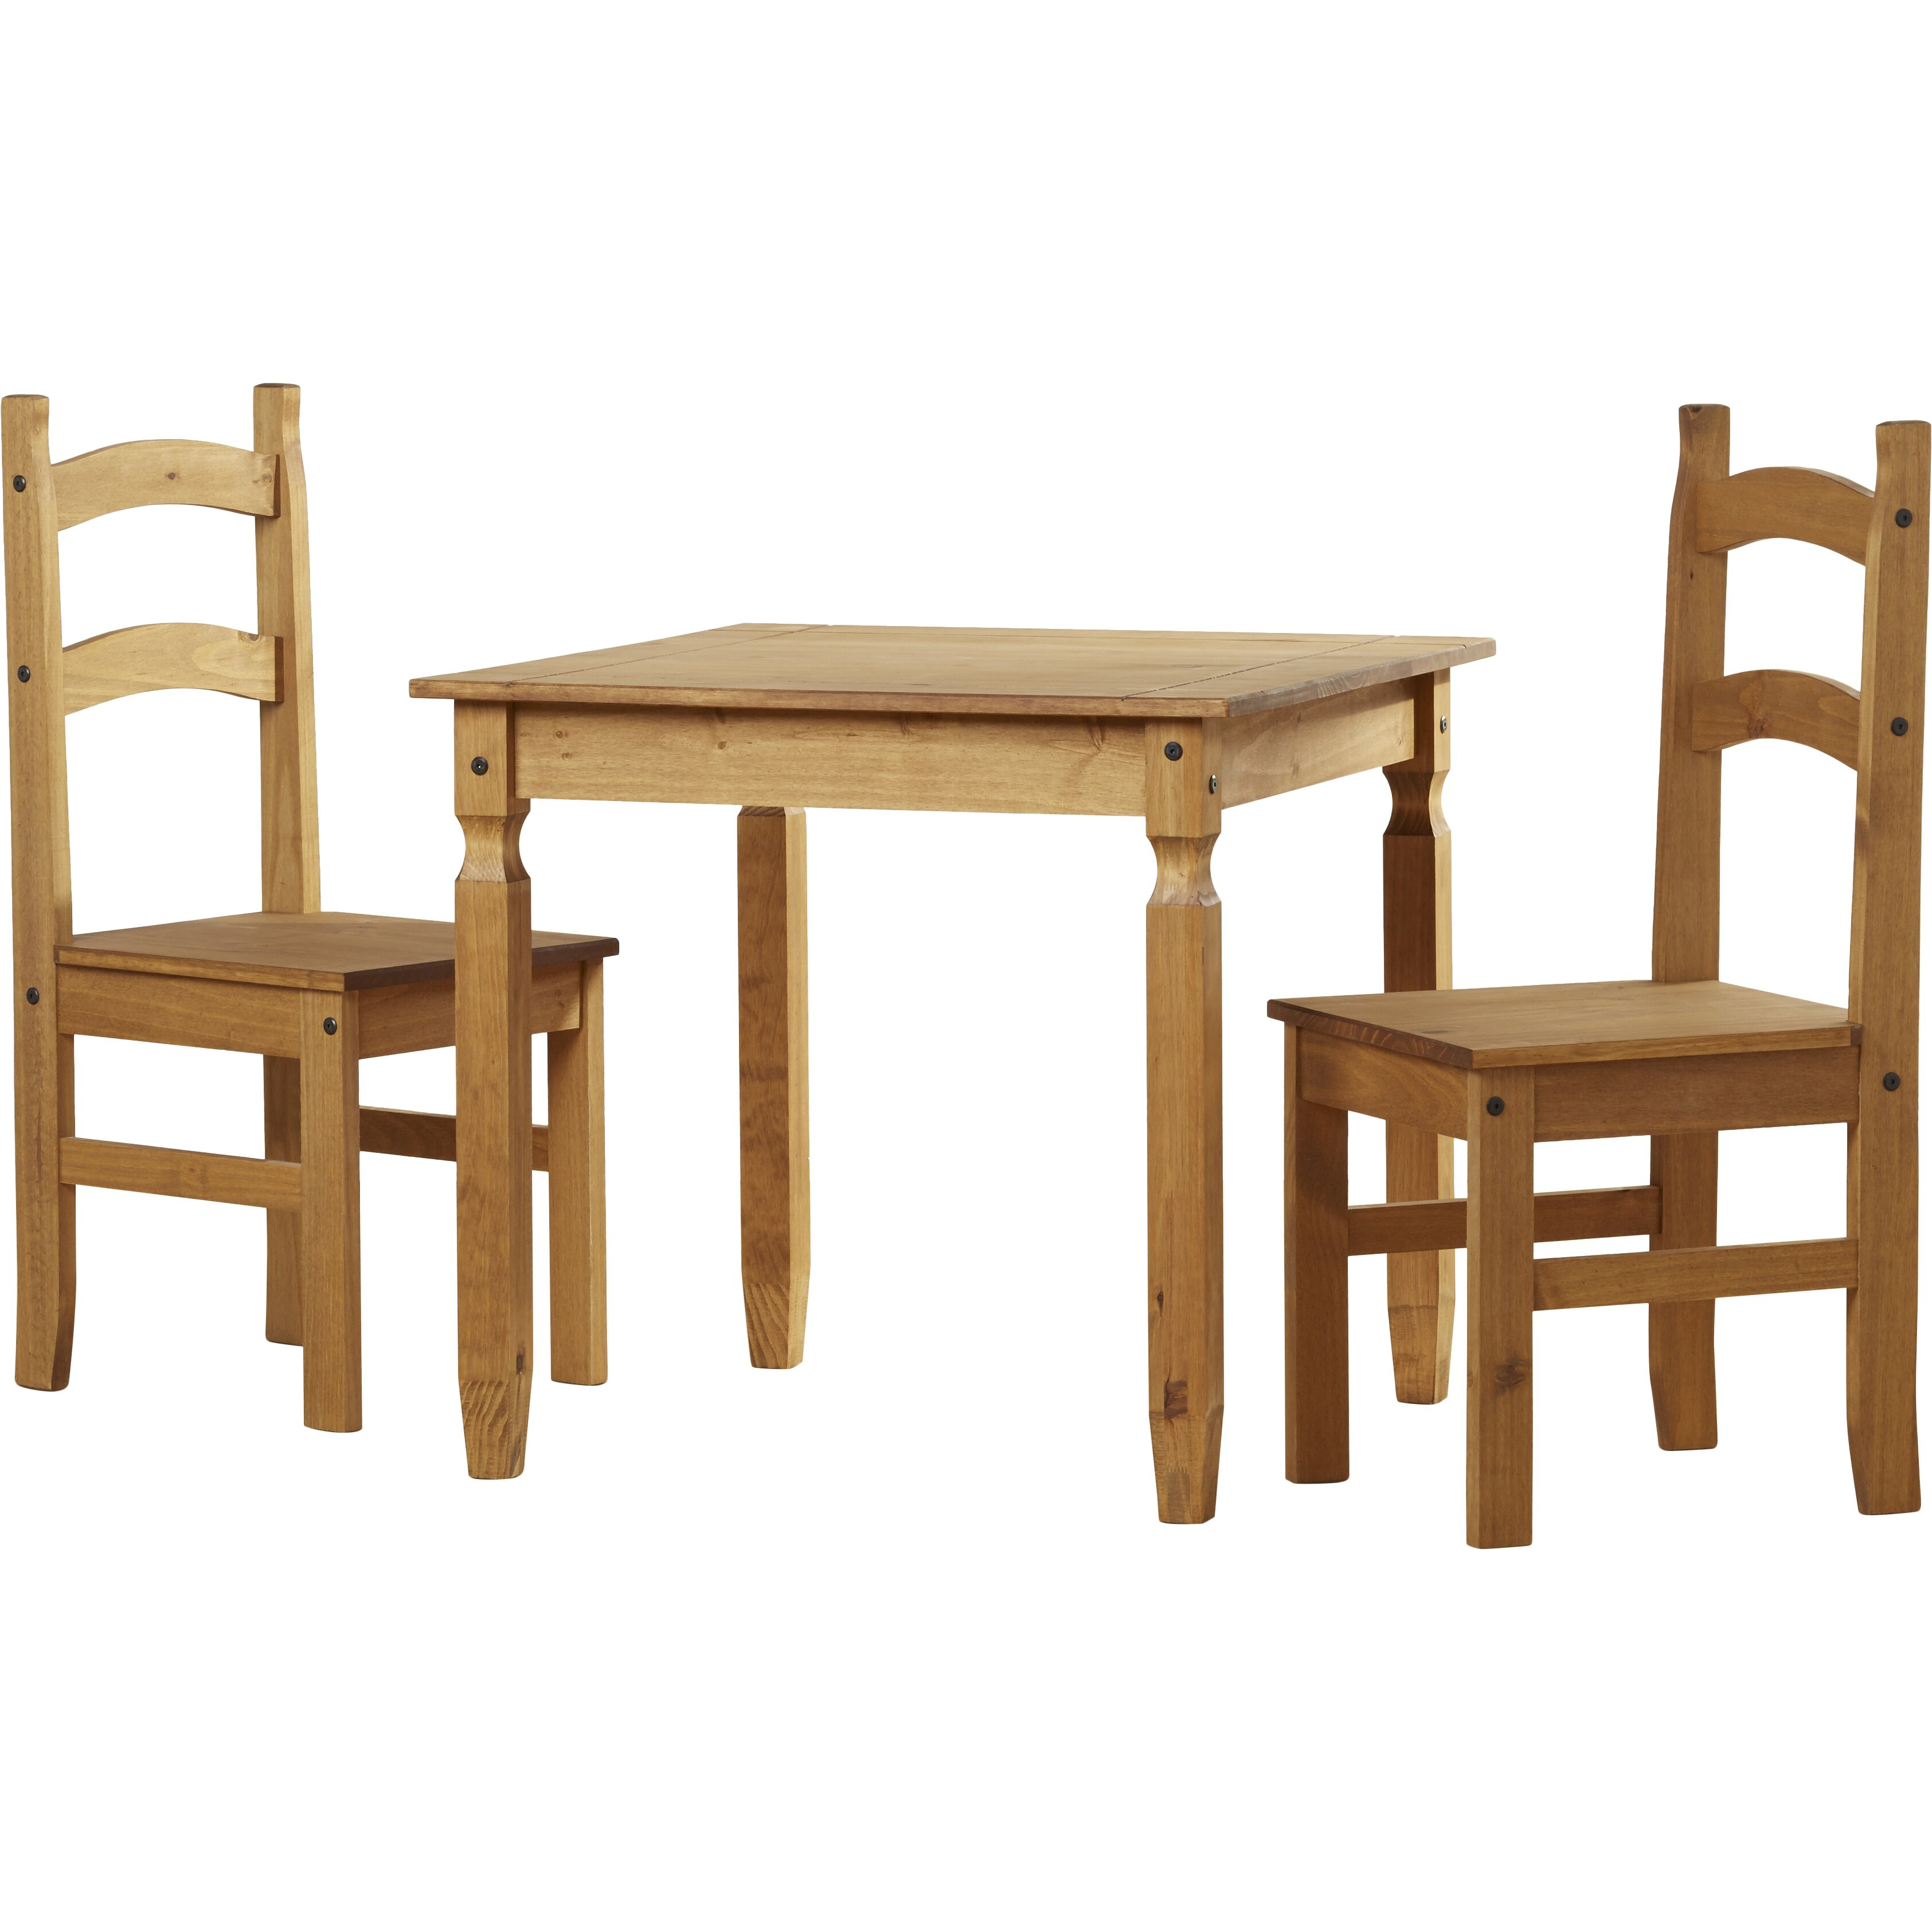 Dining Table With 2 Chairs Andover Mills Classic Corona Dining Set With 2 Chairs Reviews